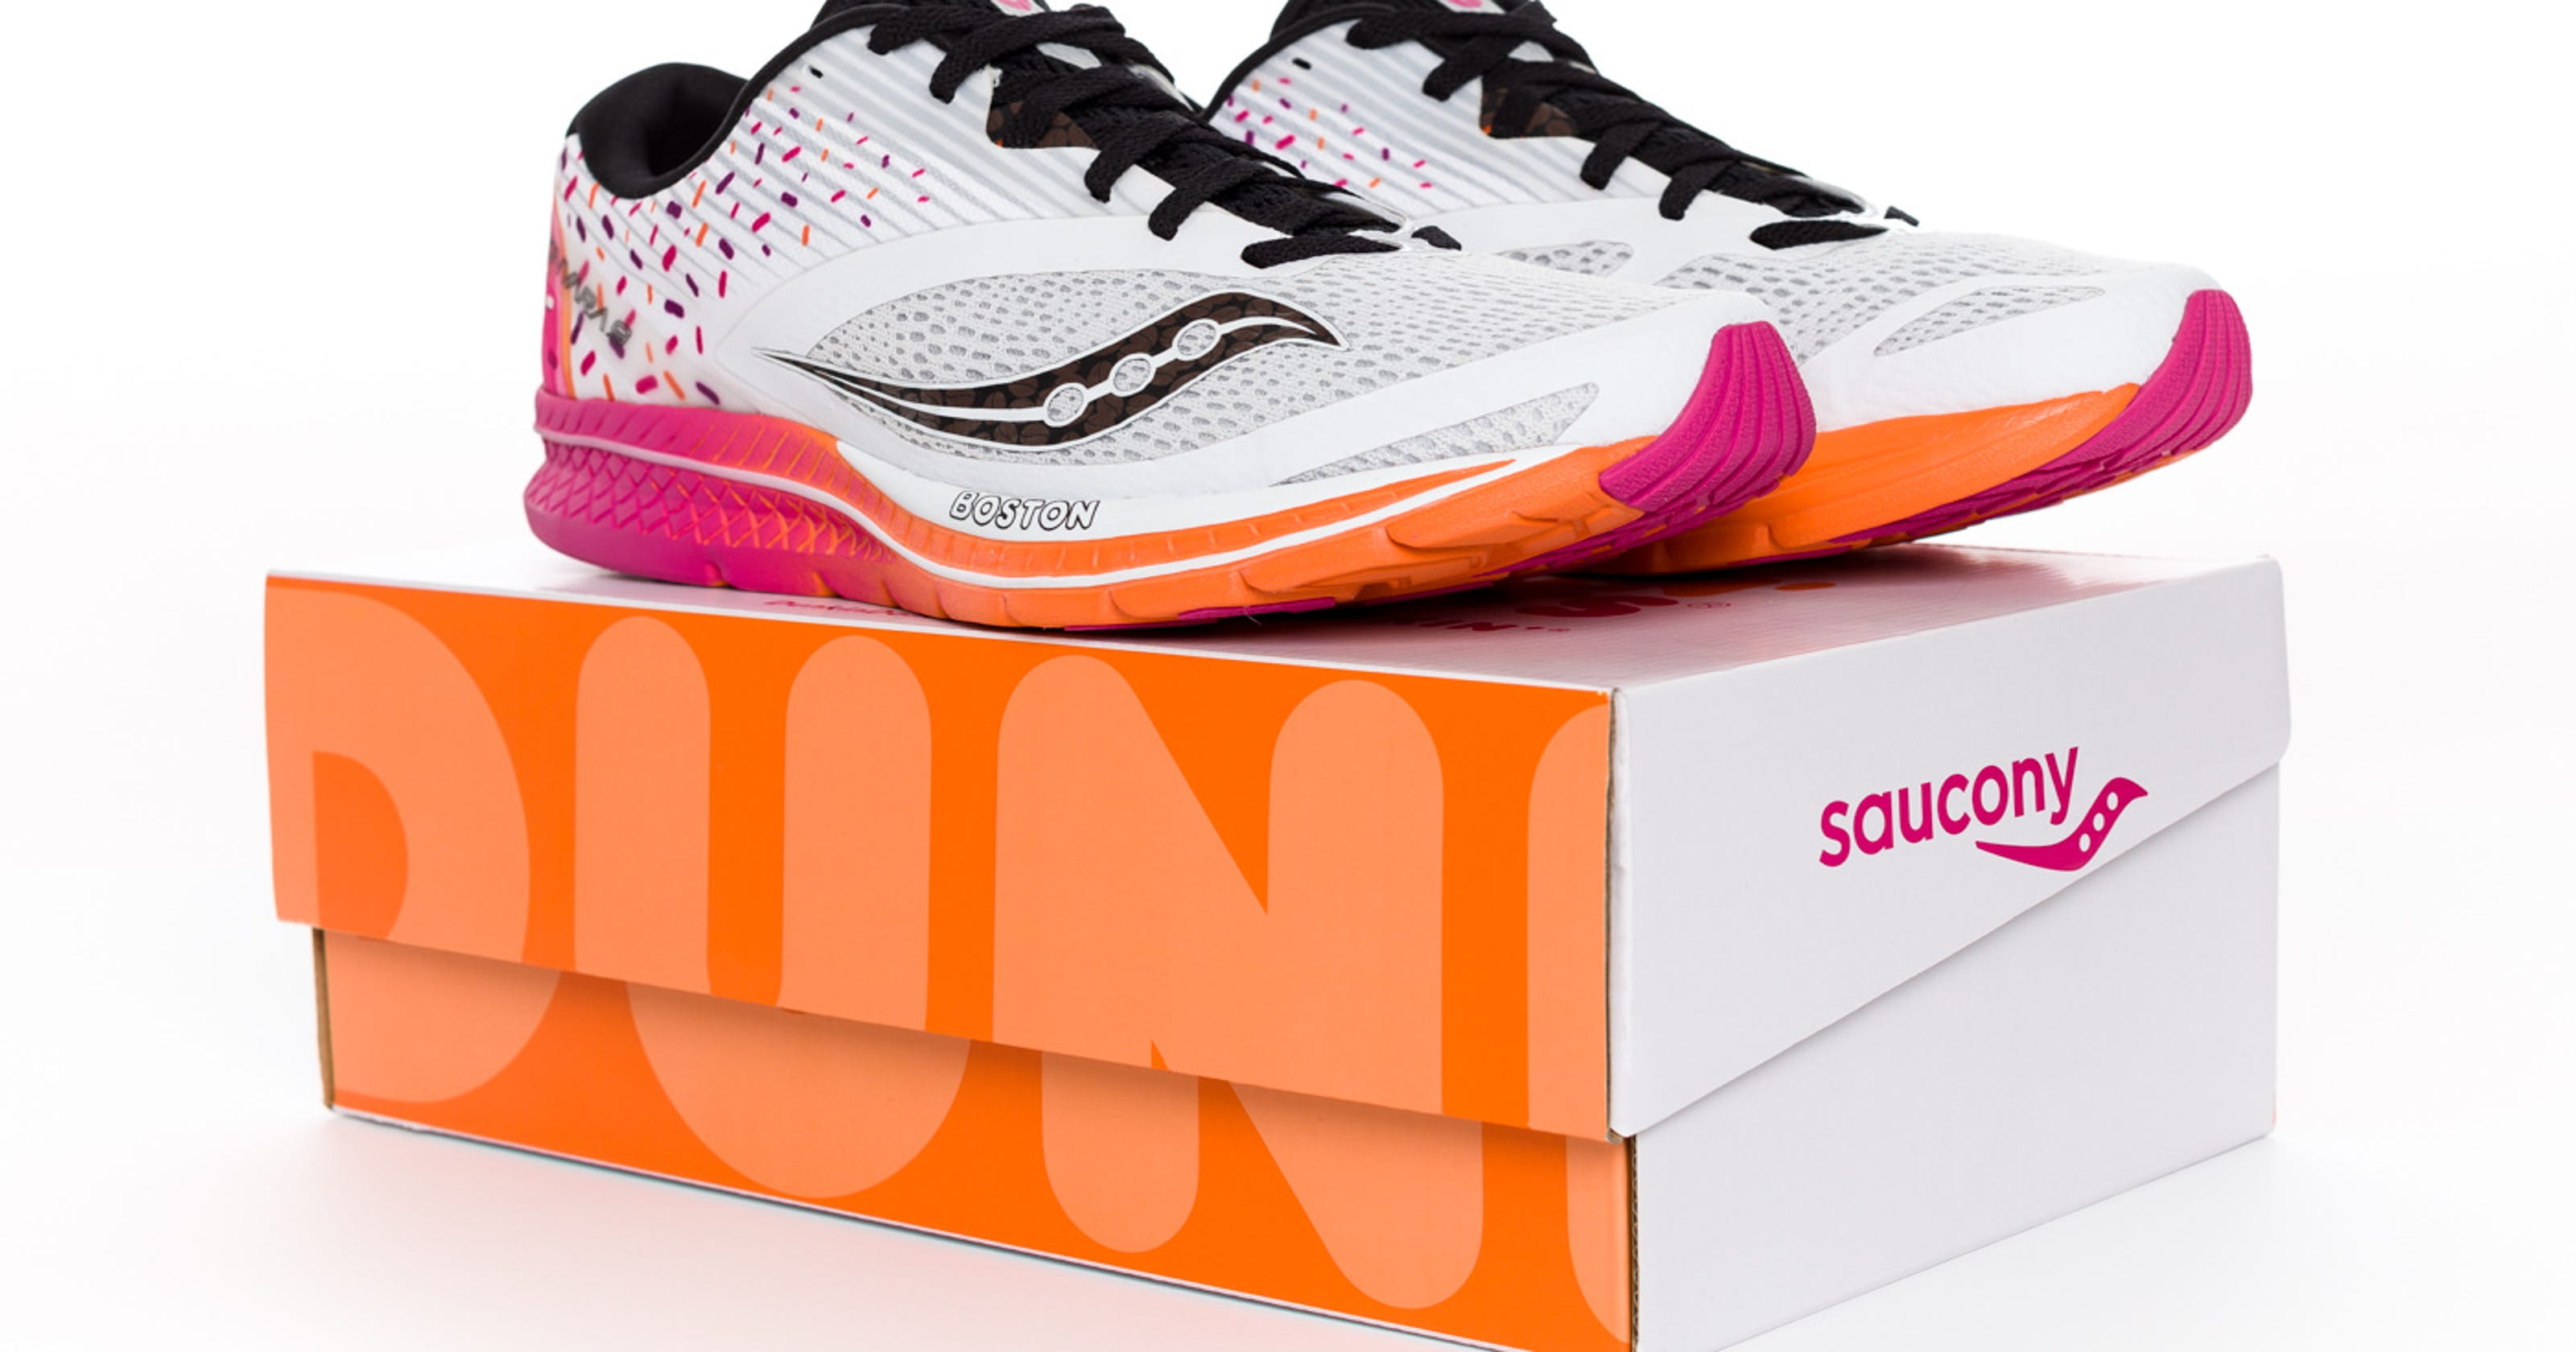 official photos 2b852 6cb6a Dunkin' Donuts, Saucony launch a doughnut-inspired sneaker